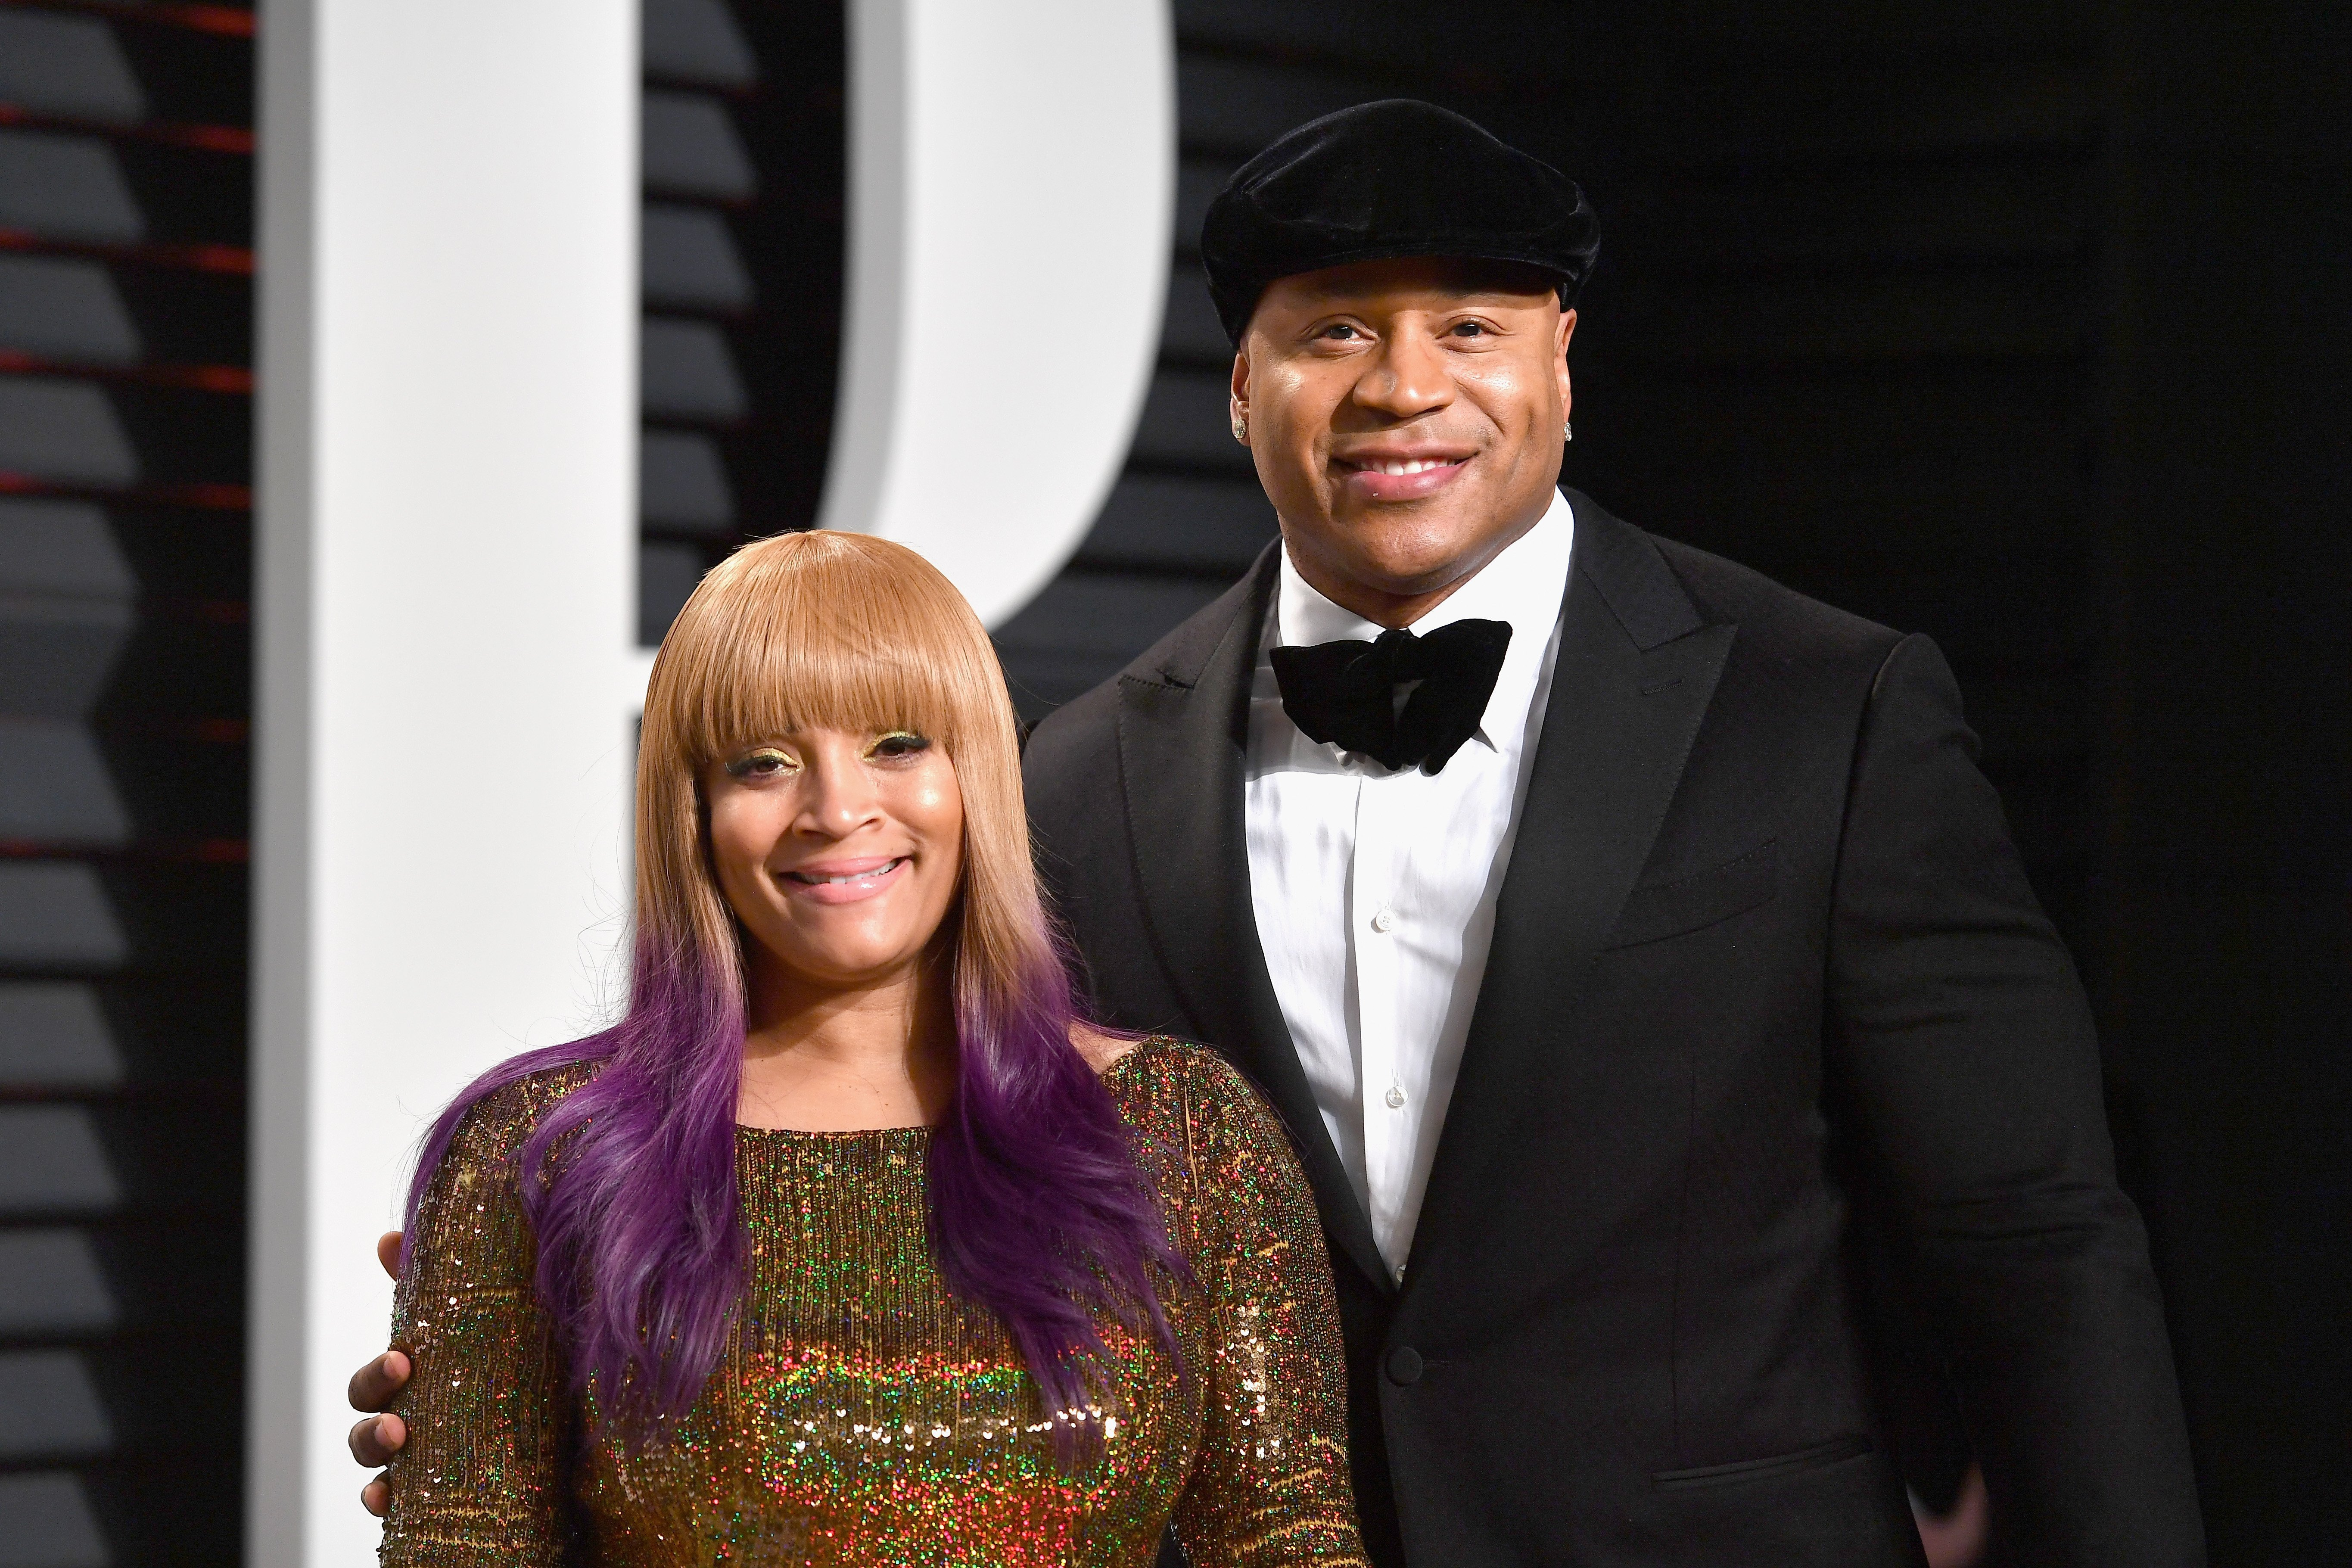 LL Cool J and wife Simone Smith on February 26, 2017 in Beverly Hills, California | Source: Getty Images